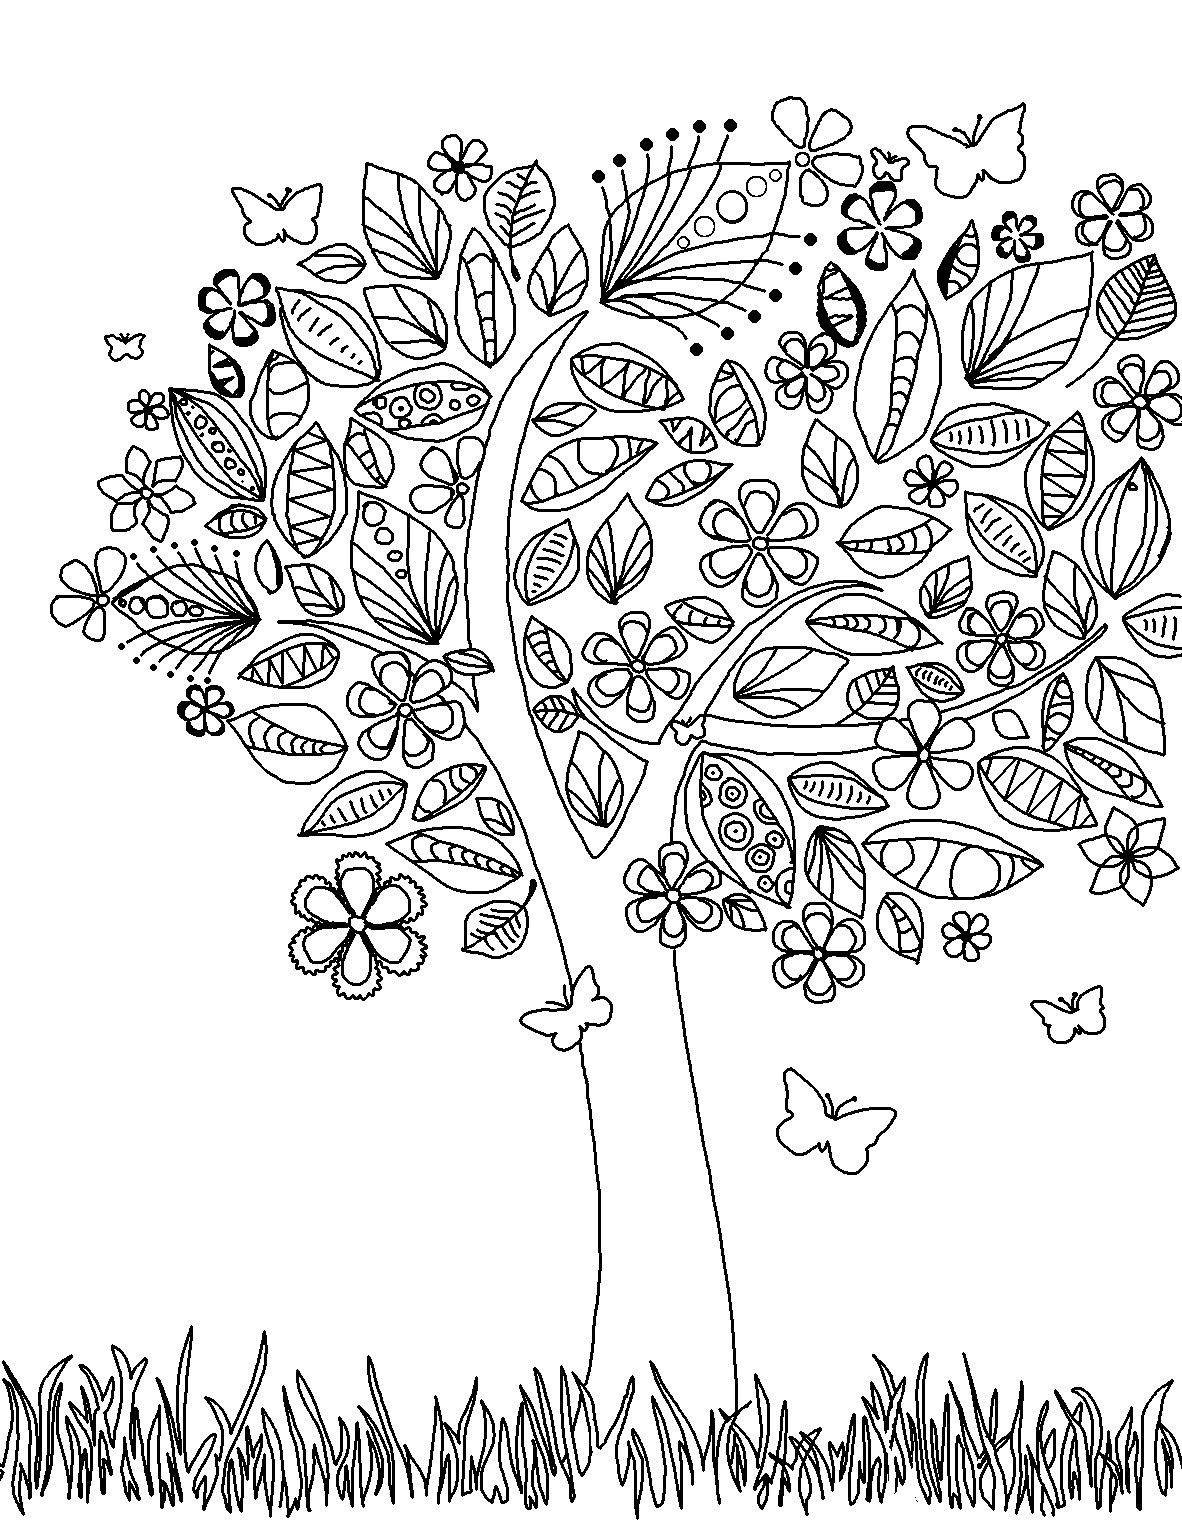 Coloring pages trees and flowers - Coloring Page World Tree Coloring Page With Flowers And Butterflies